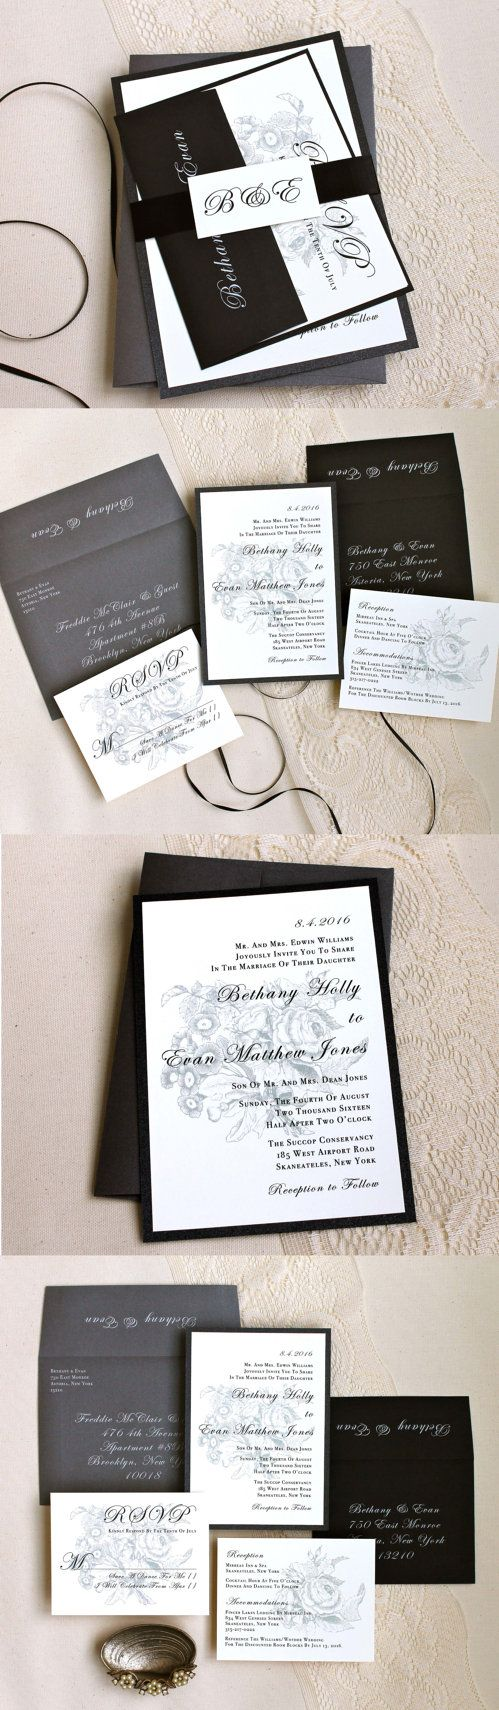 funny wedding invitation rsvp goes viral%0A Elegant Wedding Invitation Black  Gray  u     Ivory